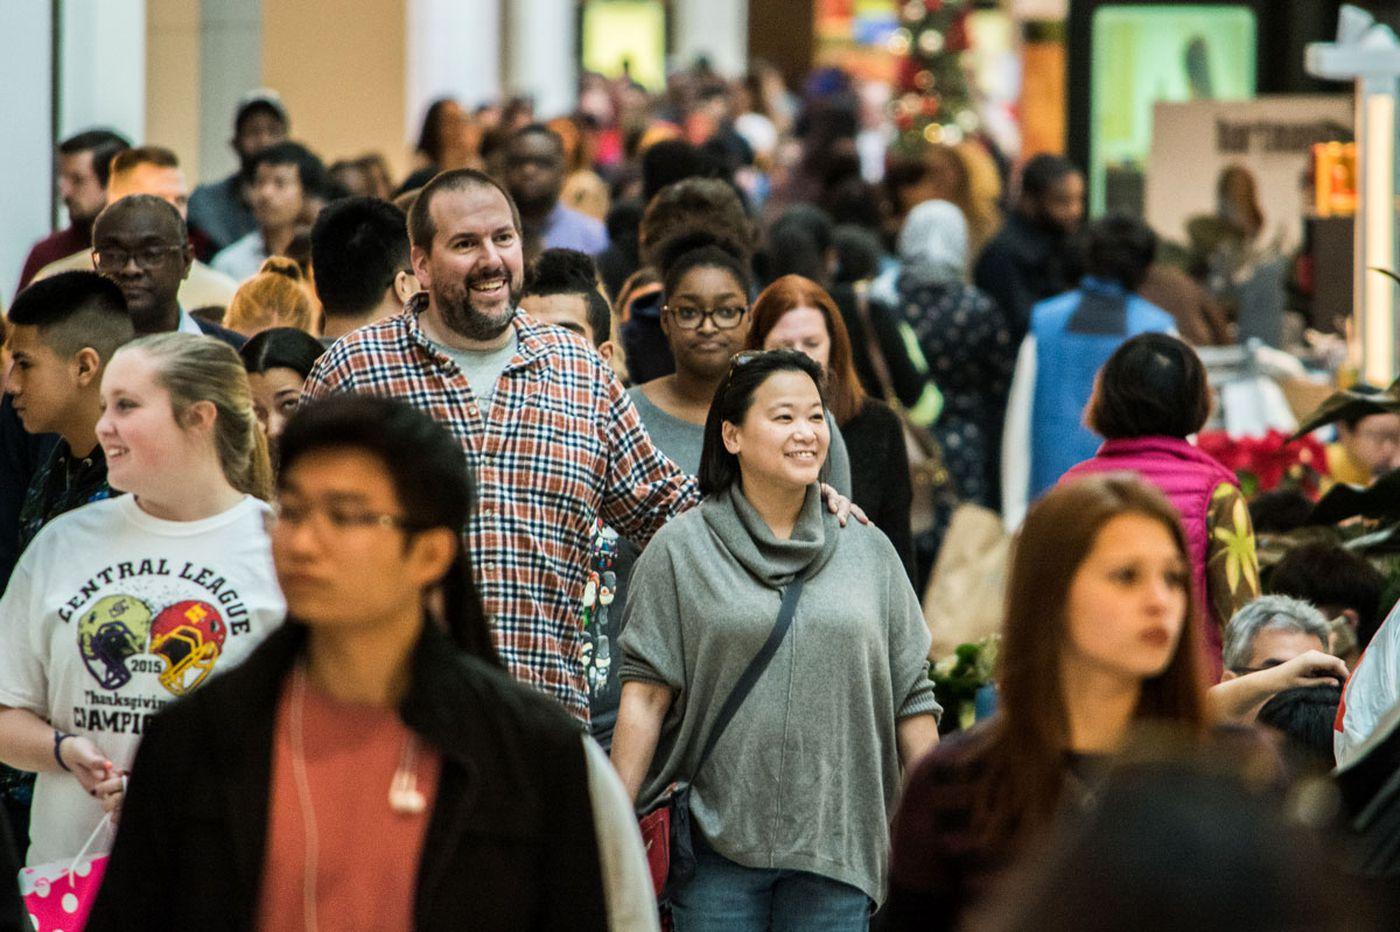 Black Friday madness takes over area malls